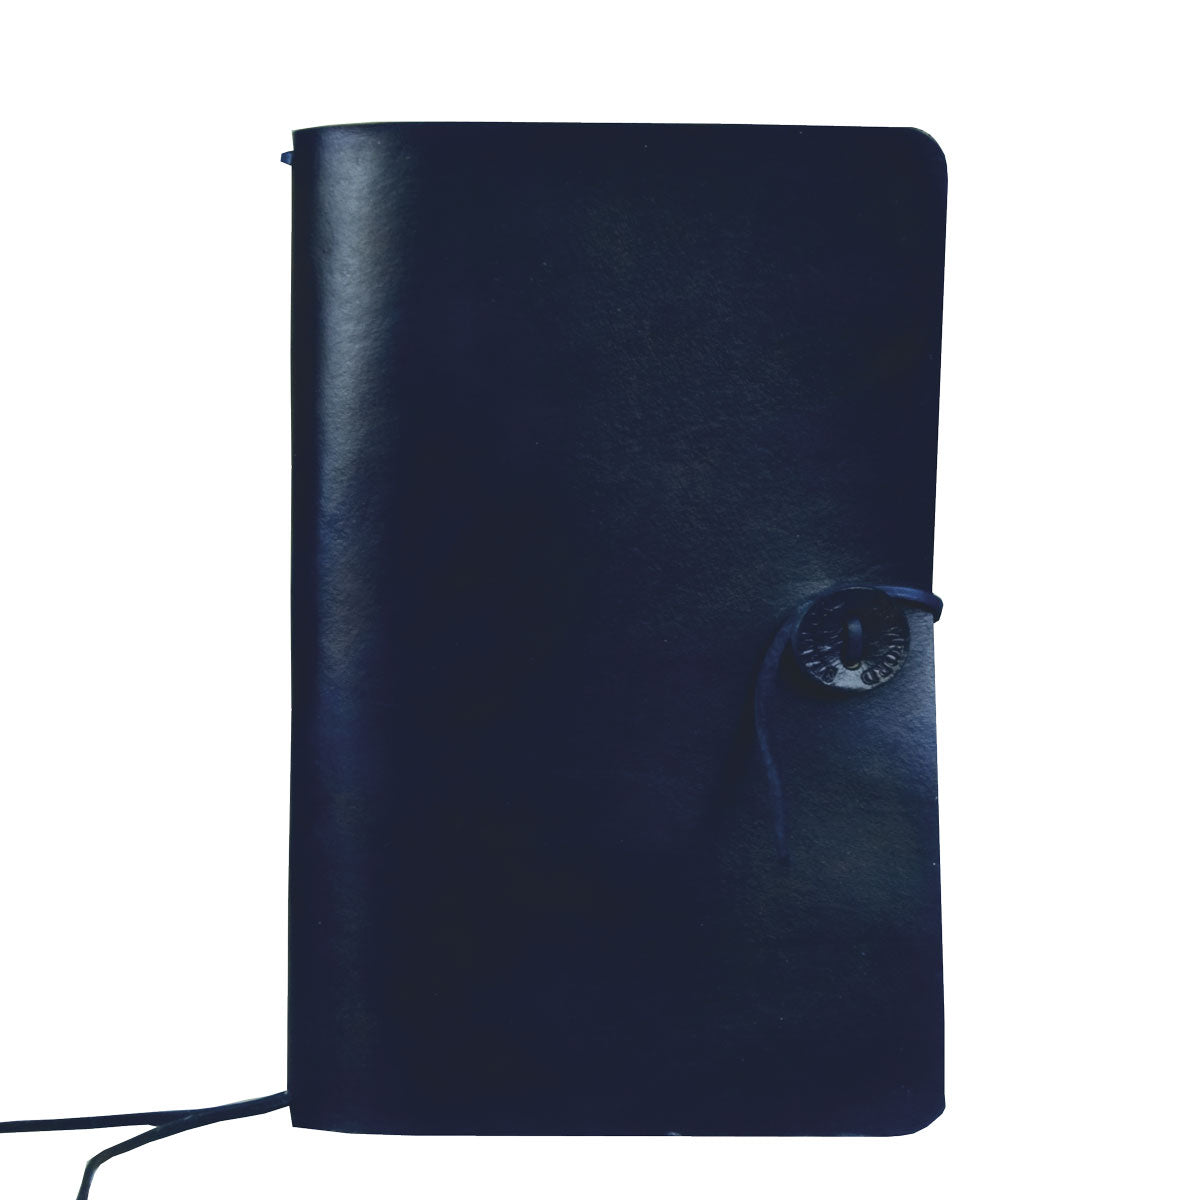 Dark Blue leather refillable travellers journal